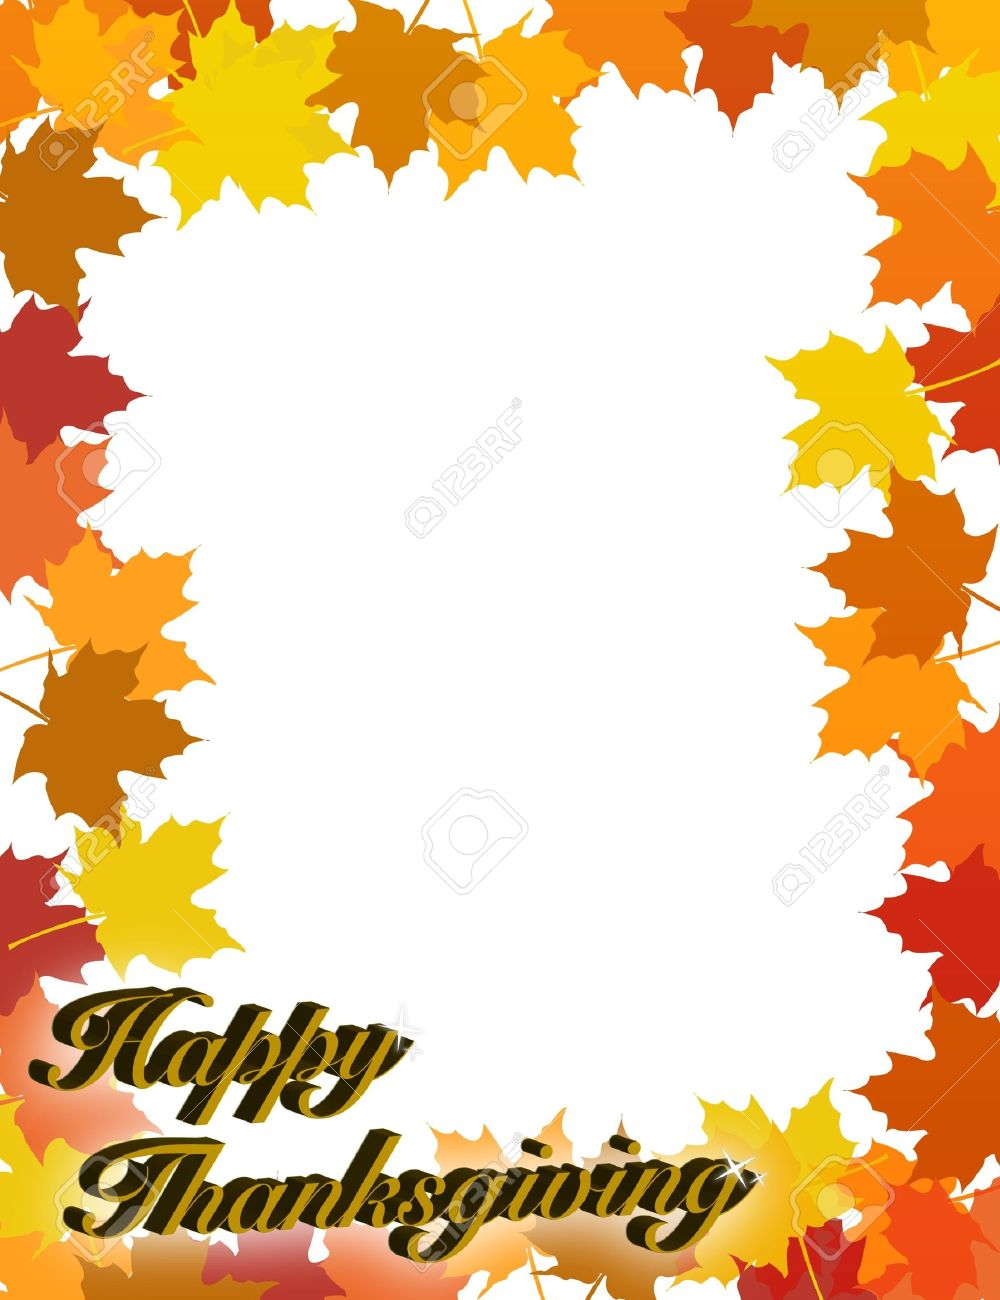 Happy Thanksgiving Free Cliparts Vectors And Stock